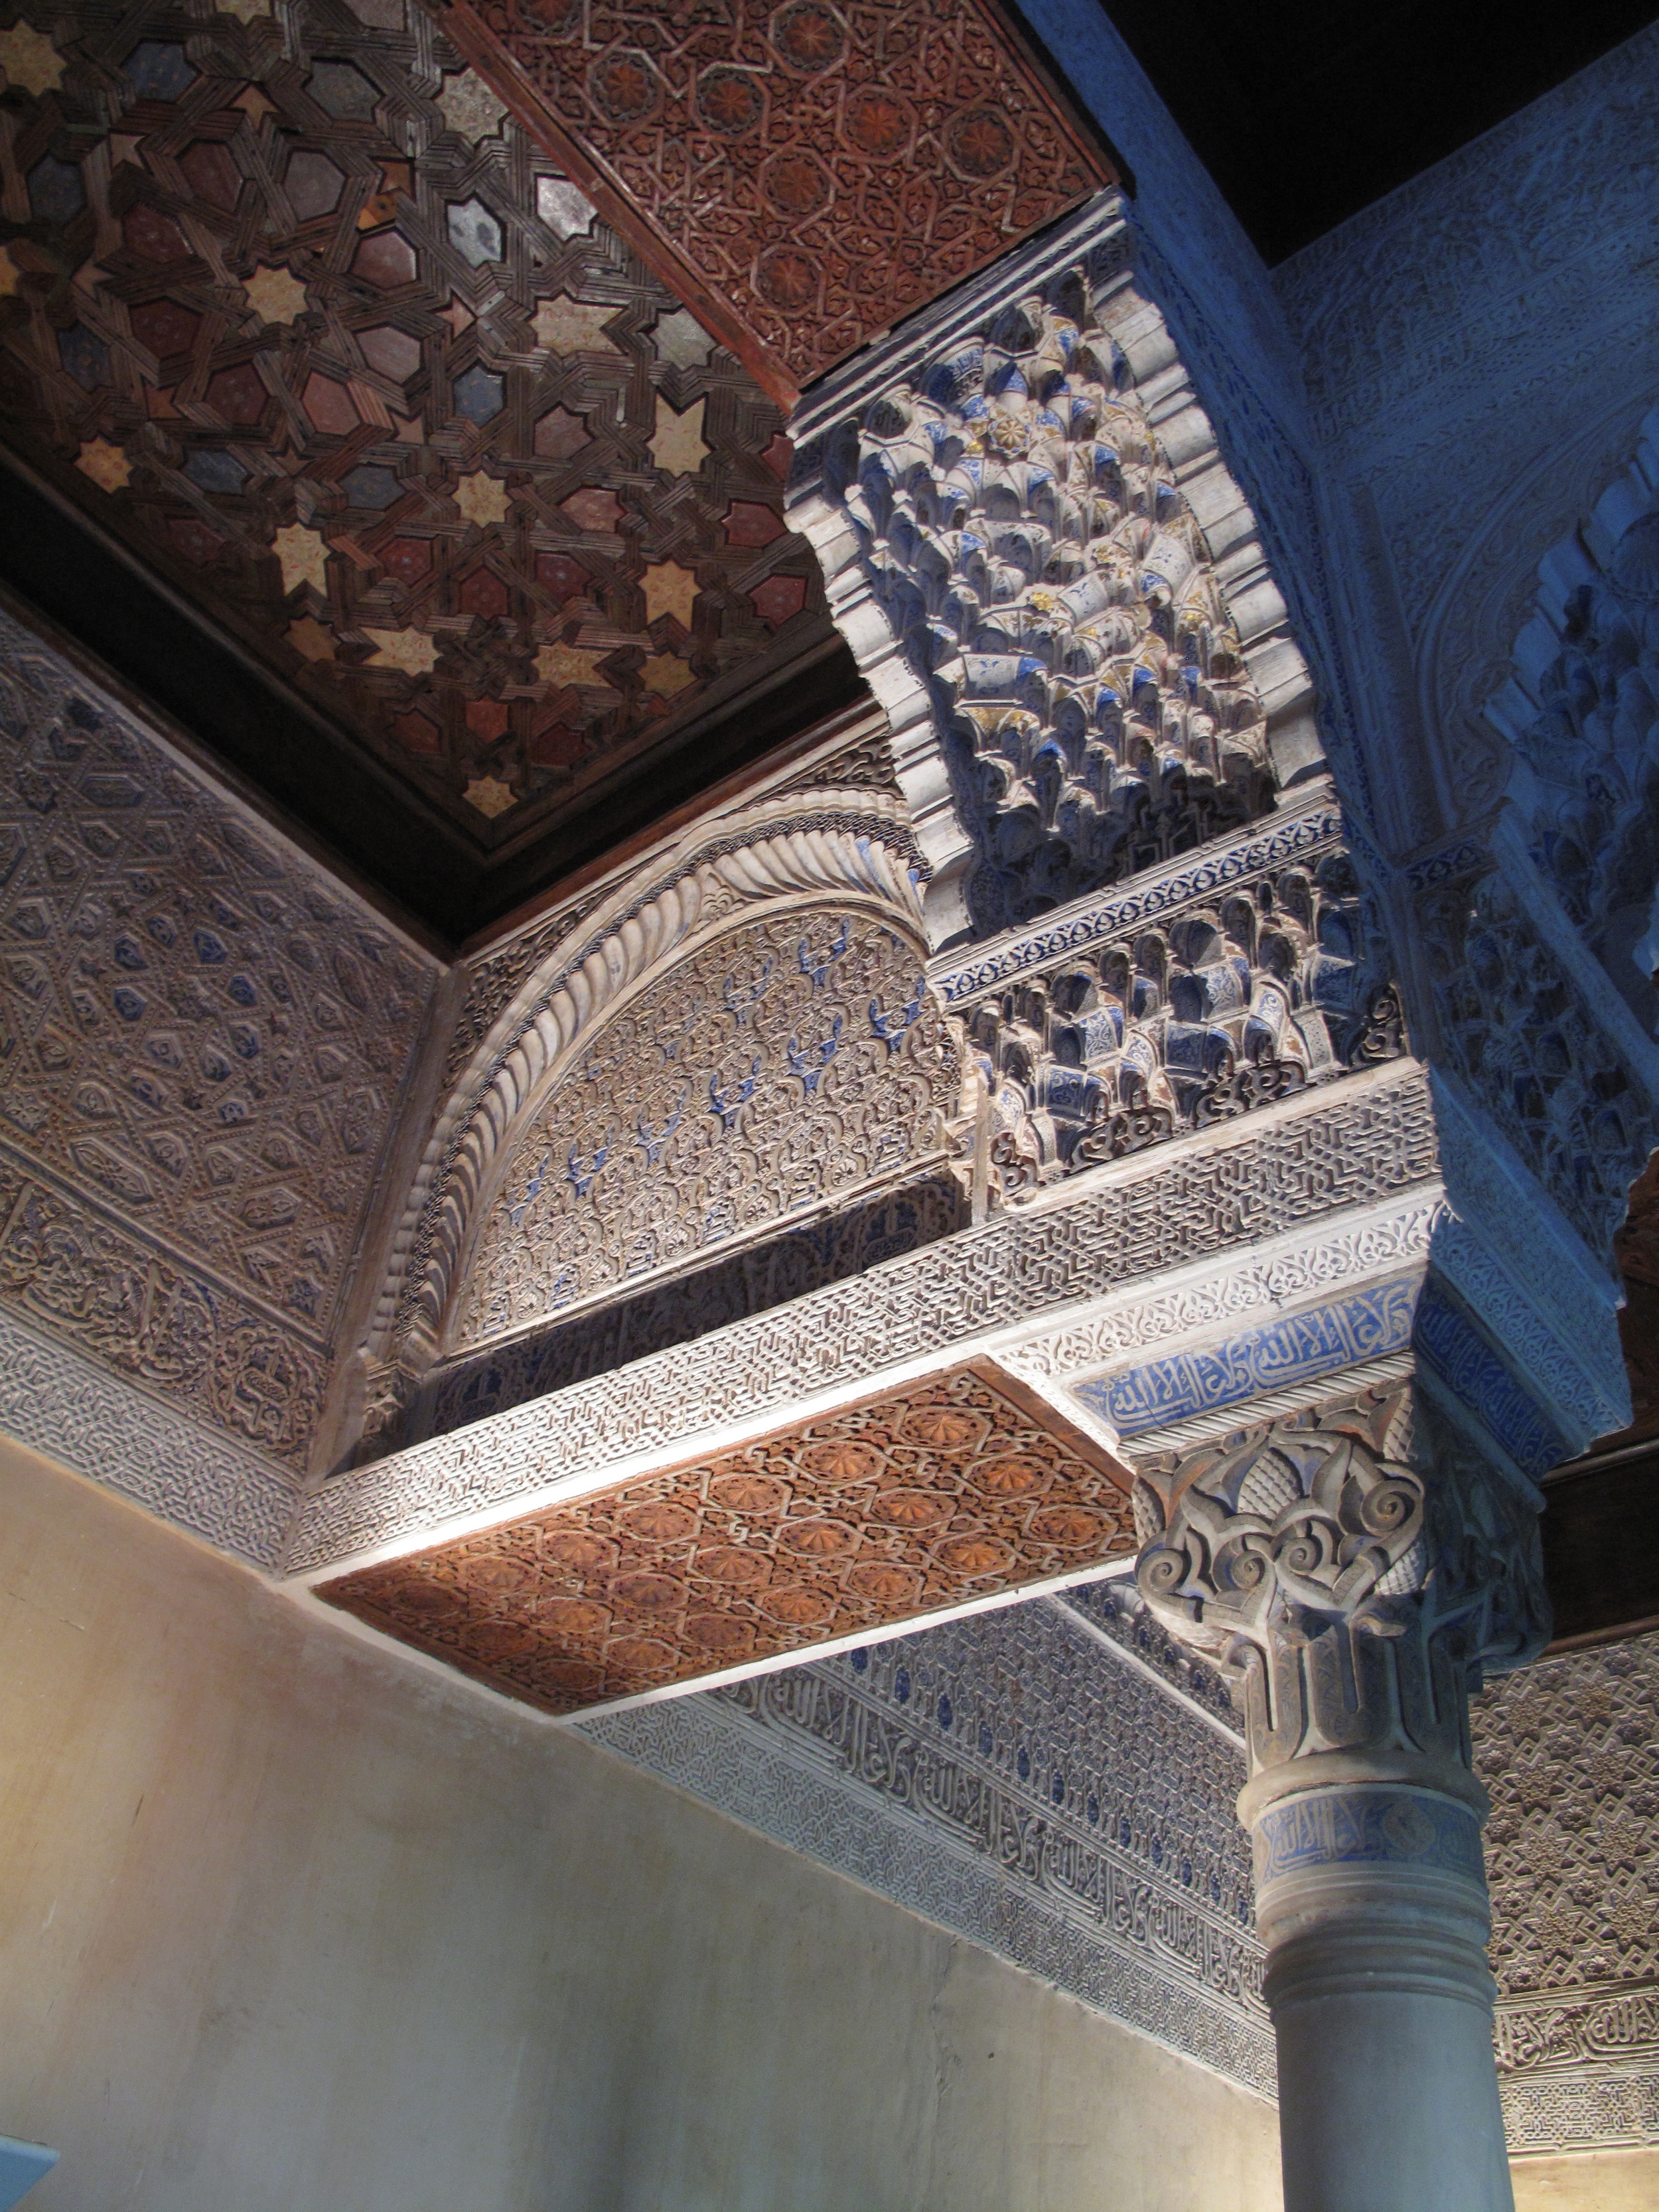 An example of medieval woodwork and painting - geometric shapes at the Alhambra